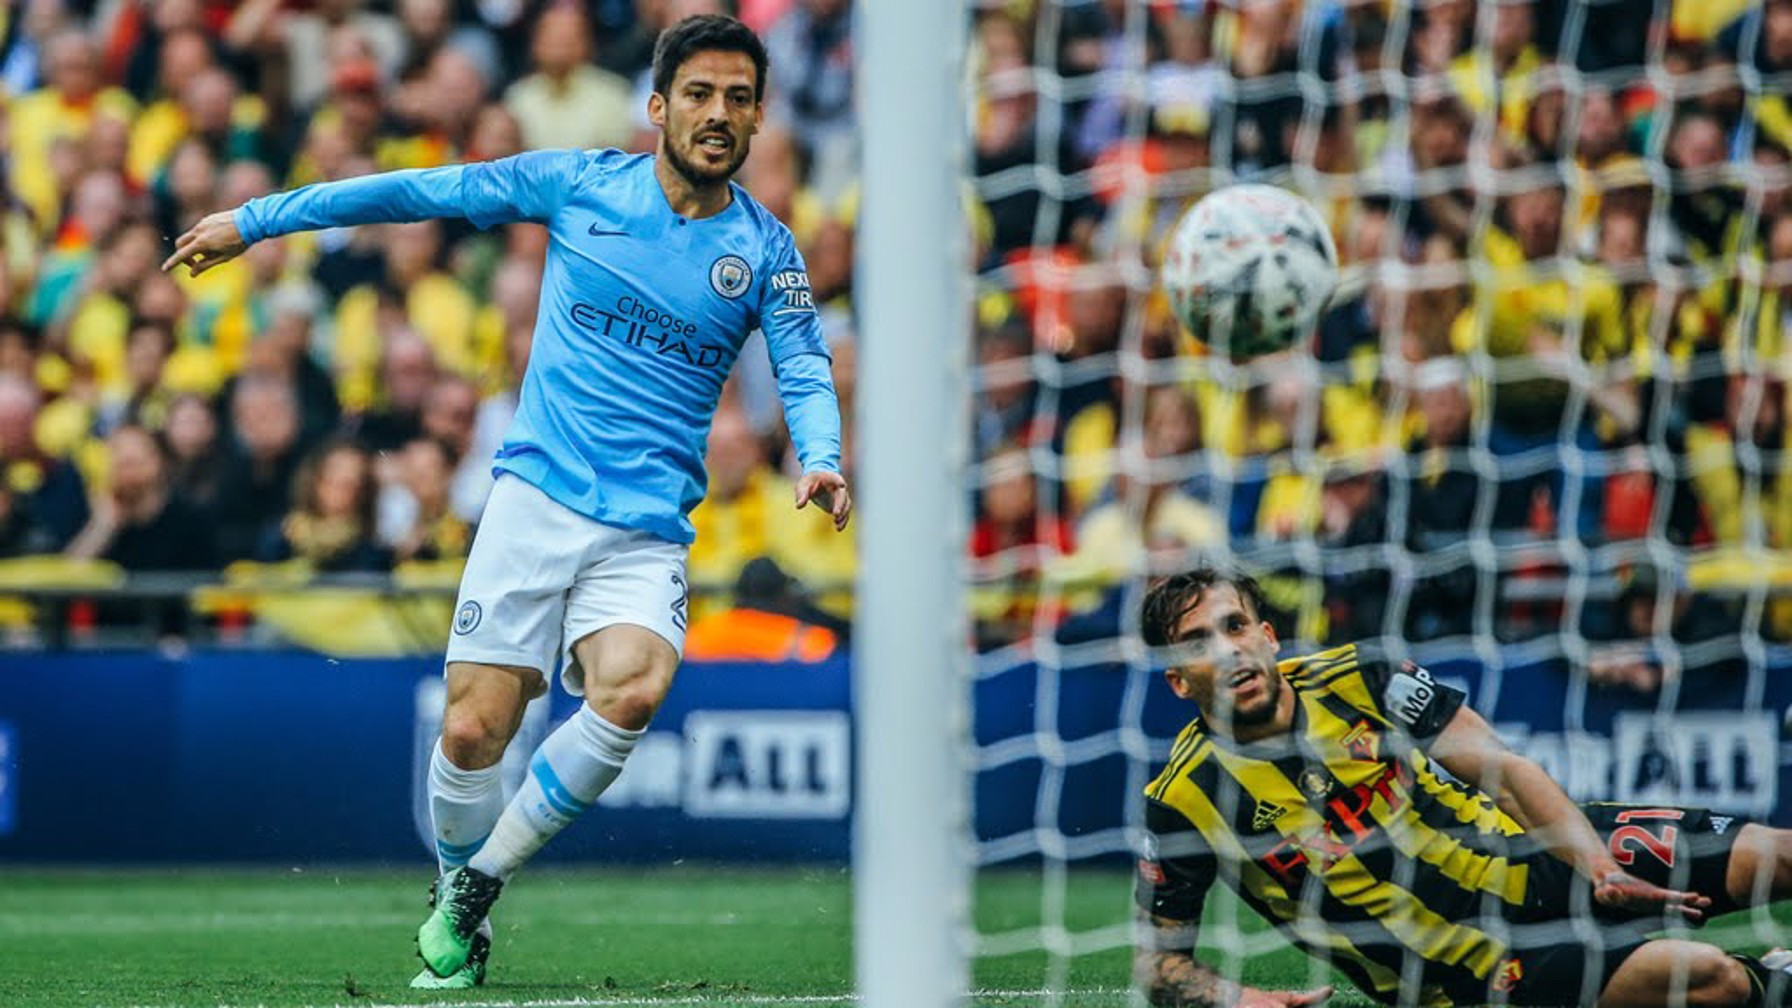 OUT THE BLOCKS: David Silva opens the scoring